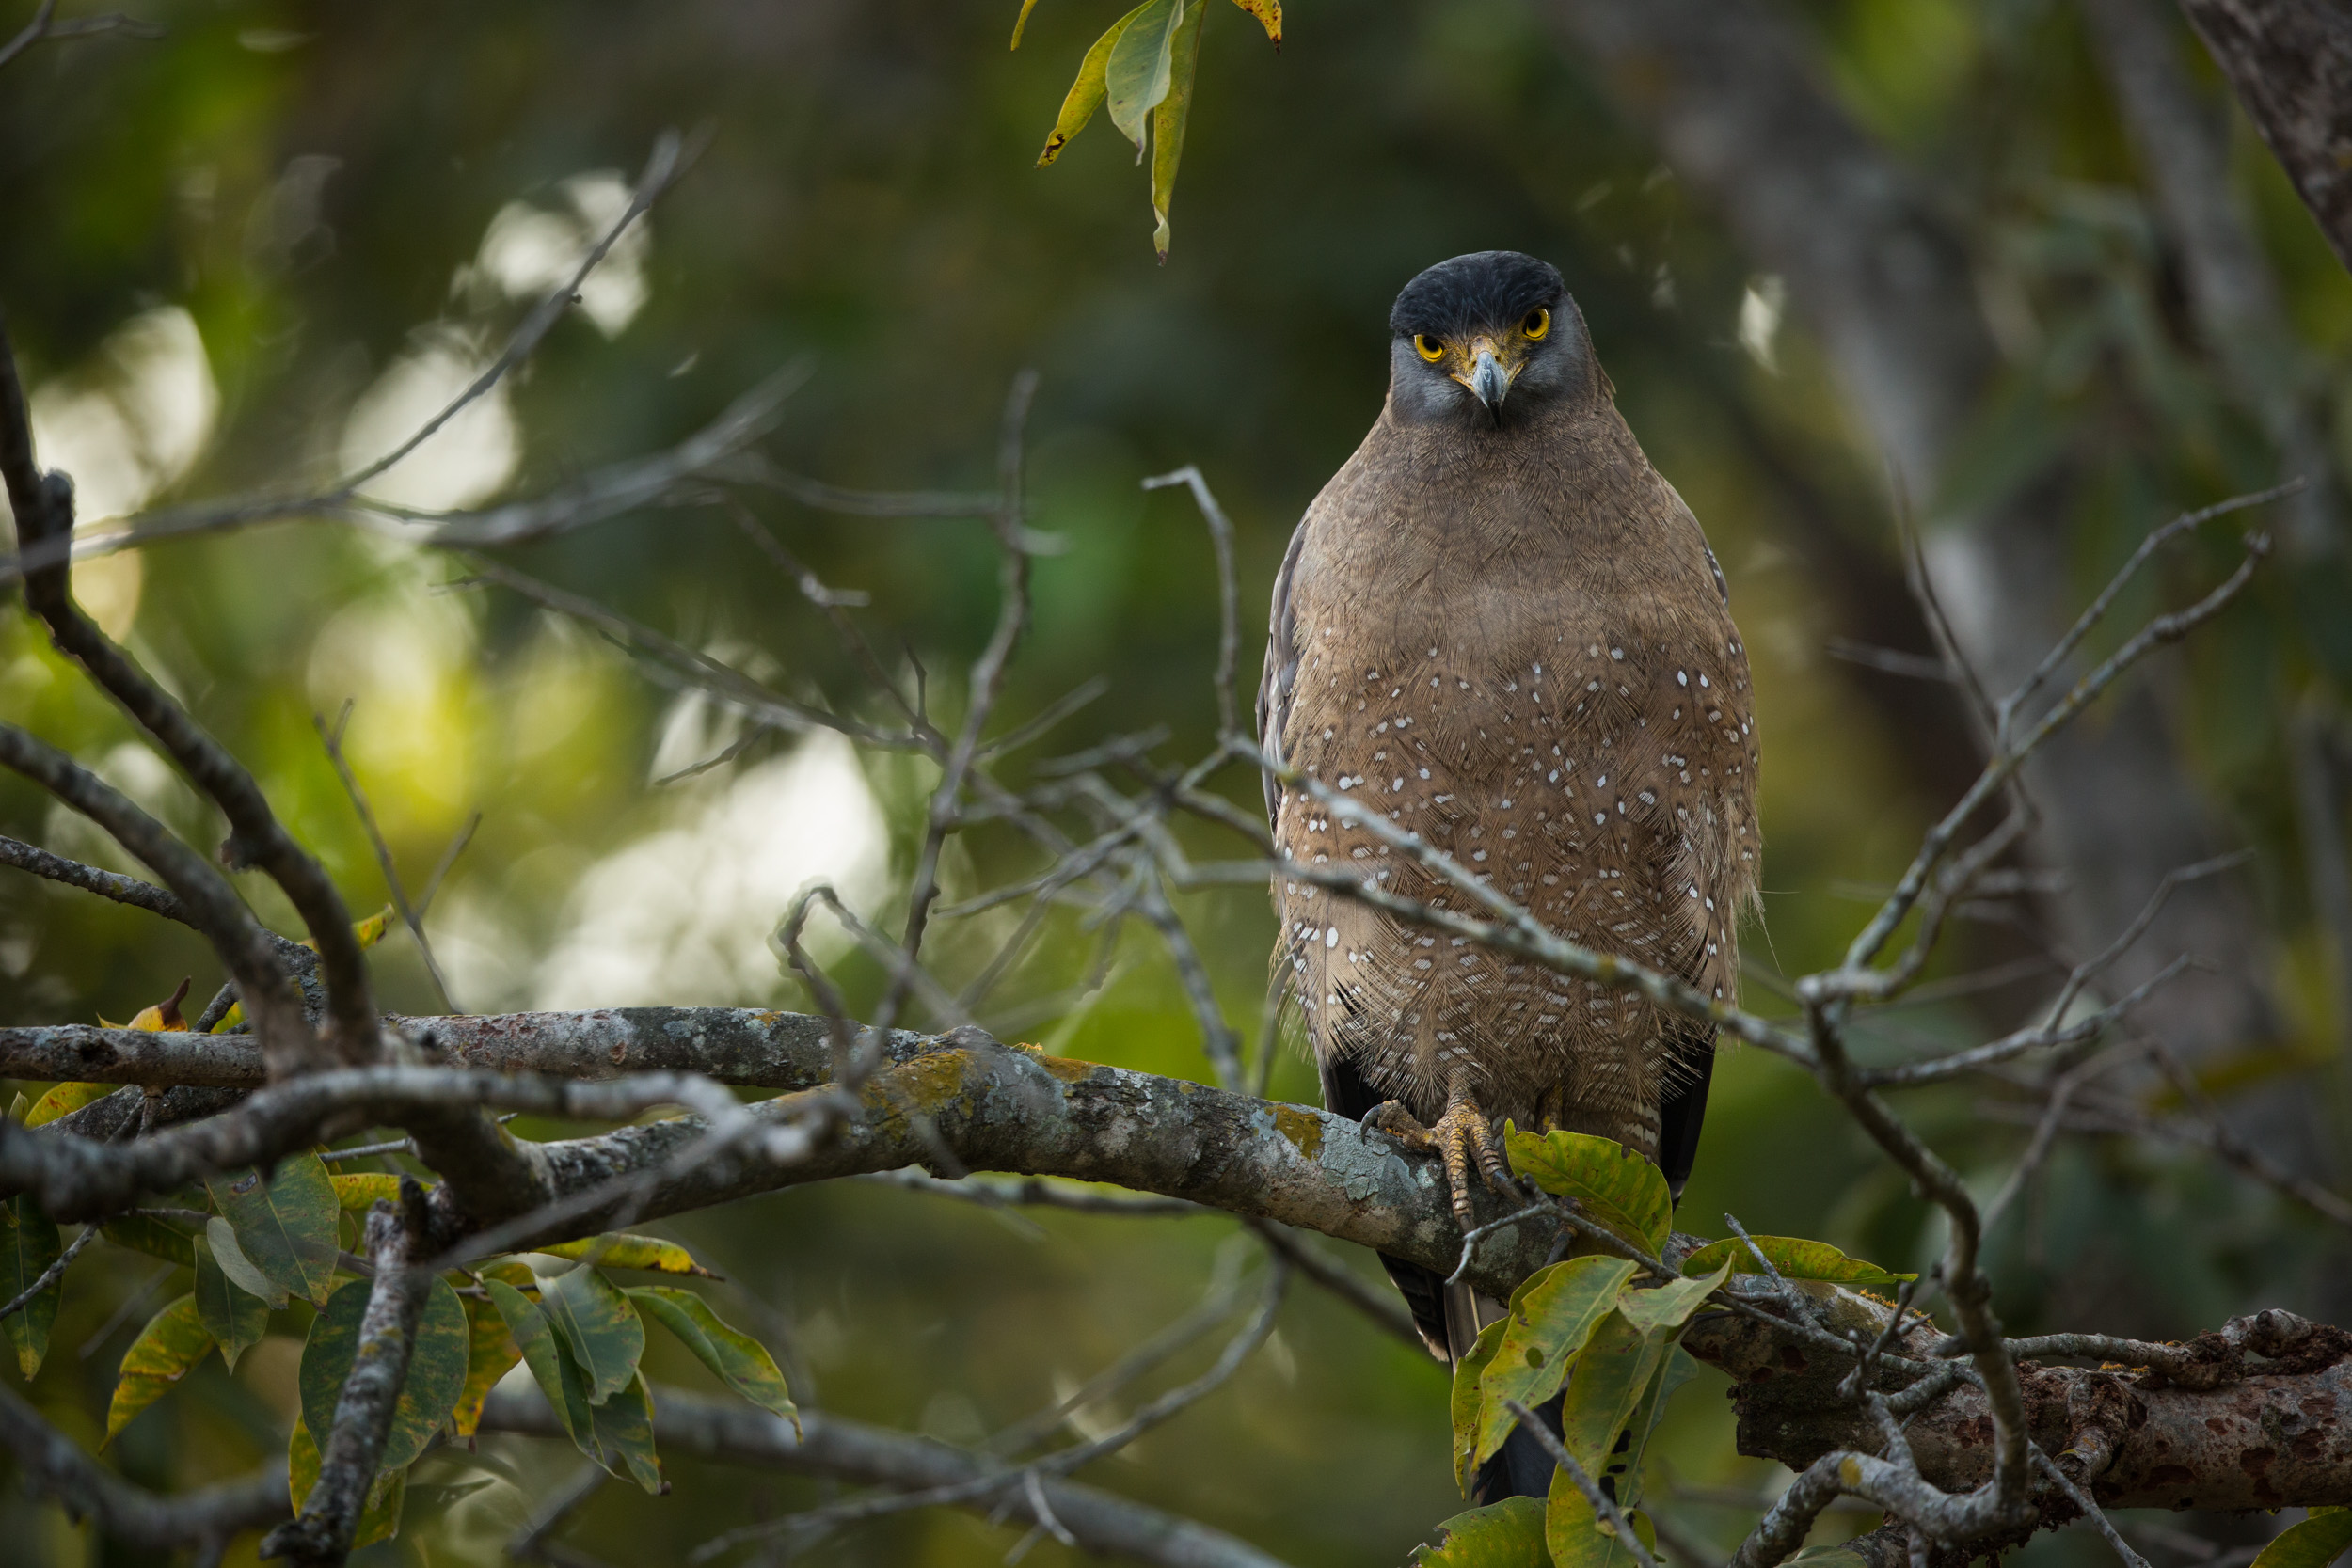 Crested serpent eagle (Spilornis cheela). CLICK IMAGE for full screen.